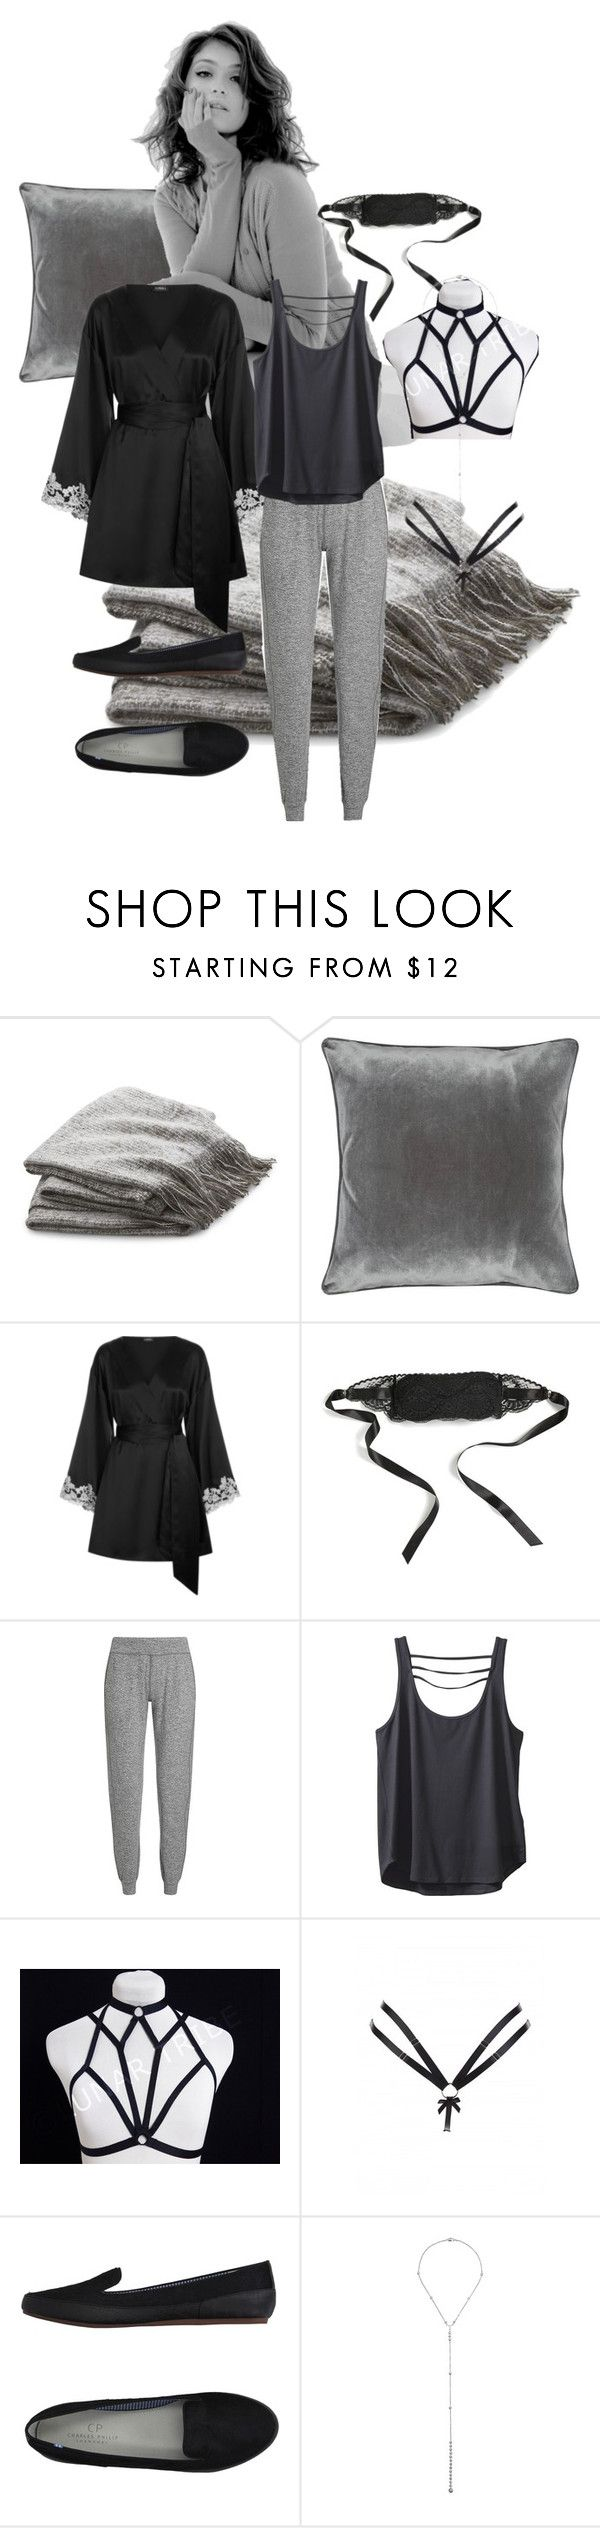 """Nadiya - Pajama Party"" by shelbywyatt on Polyvore featuring Crate and Barrel, M&Co, L'Agent By Agent Provocateur, Sweaty Betty, Kavu, Dessous, Bordelle, Charles Philip Shanghai and Eddie Borgo"